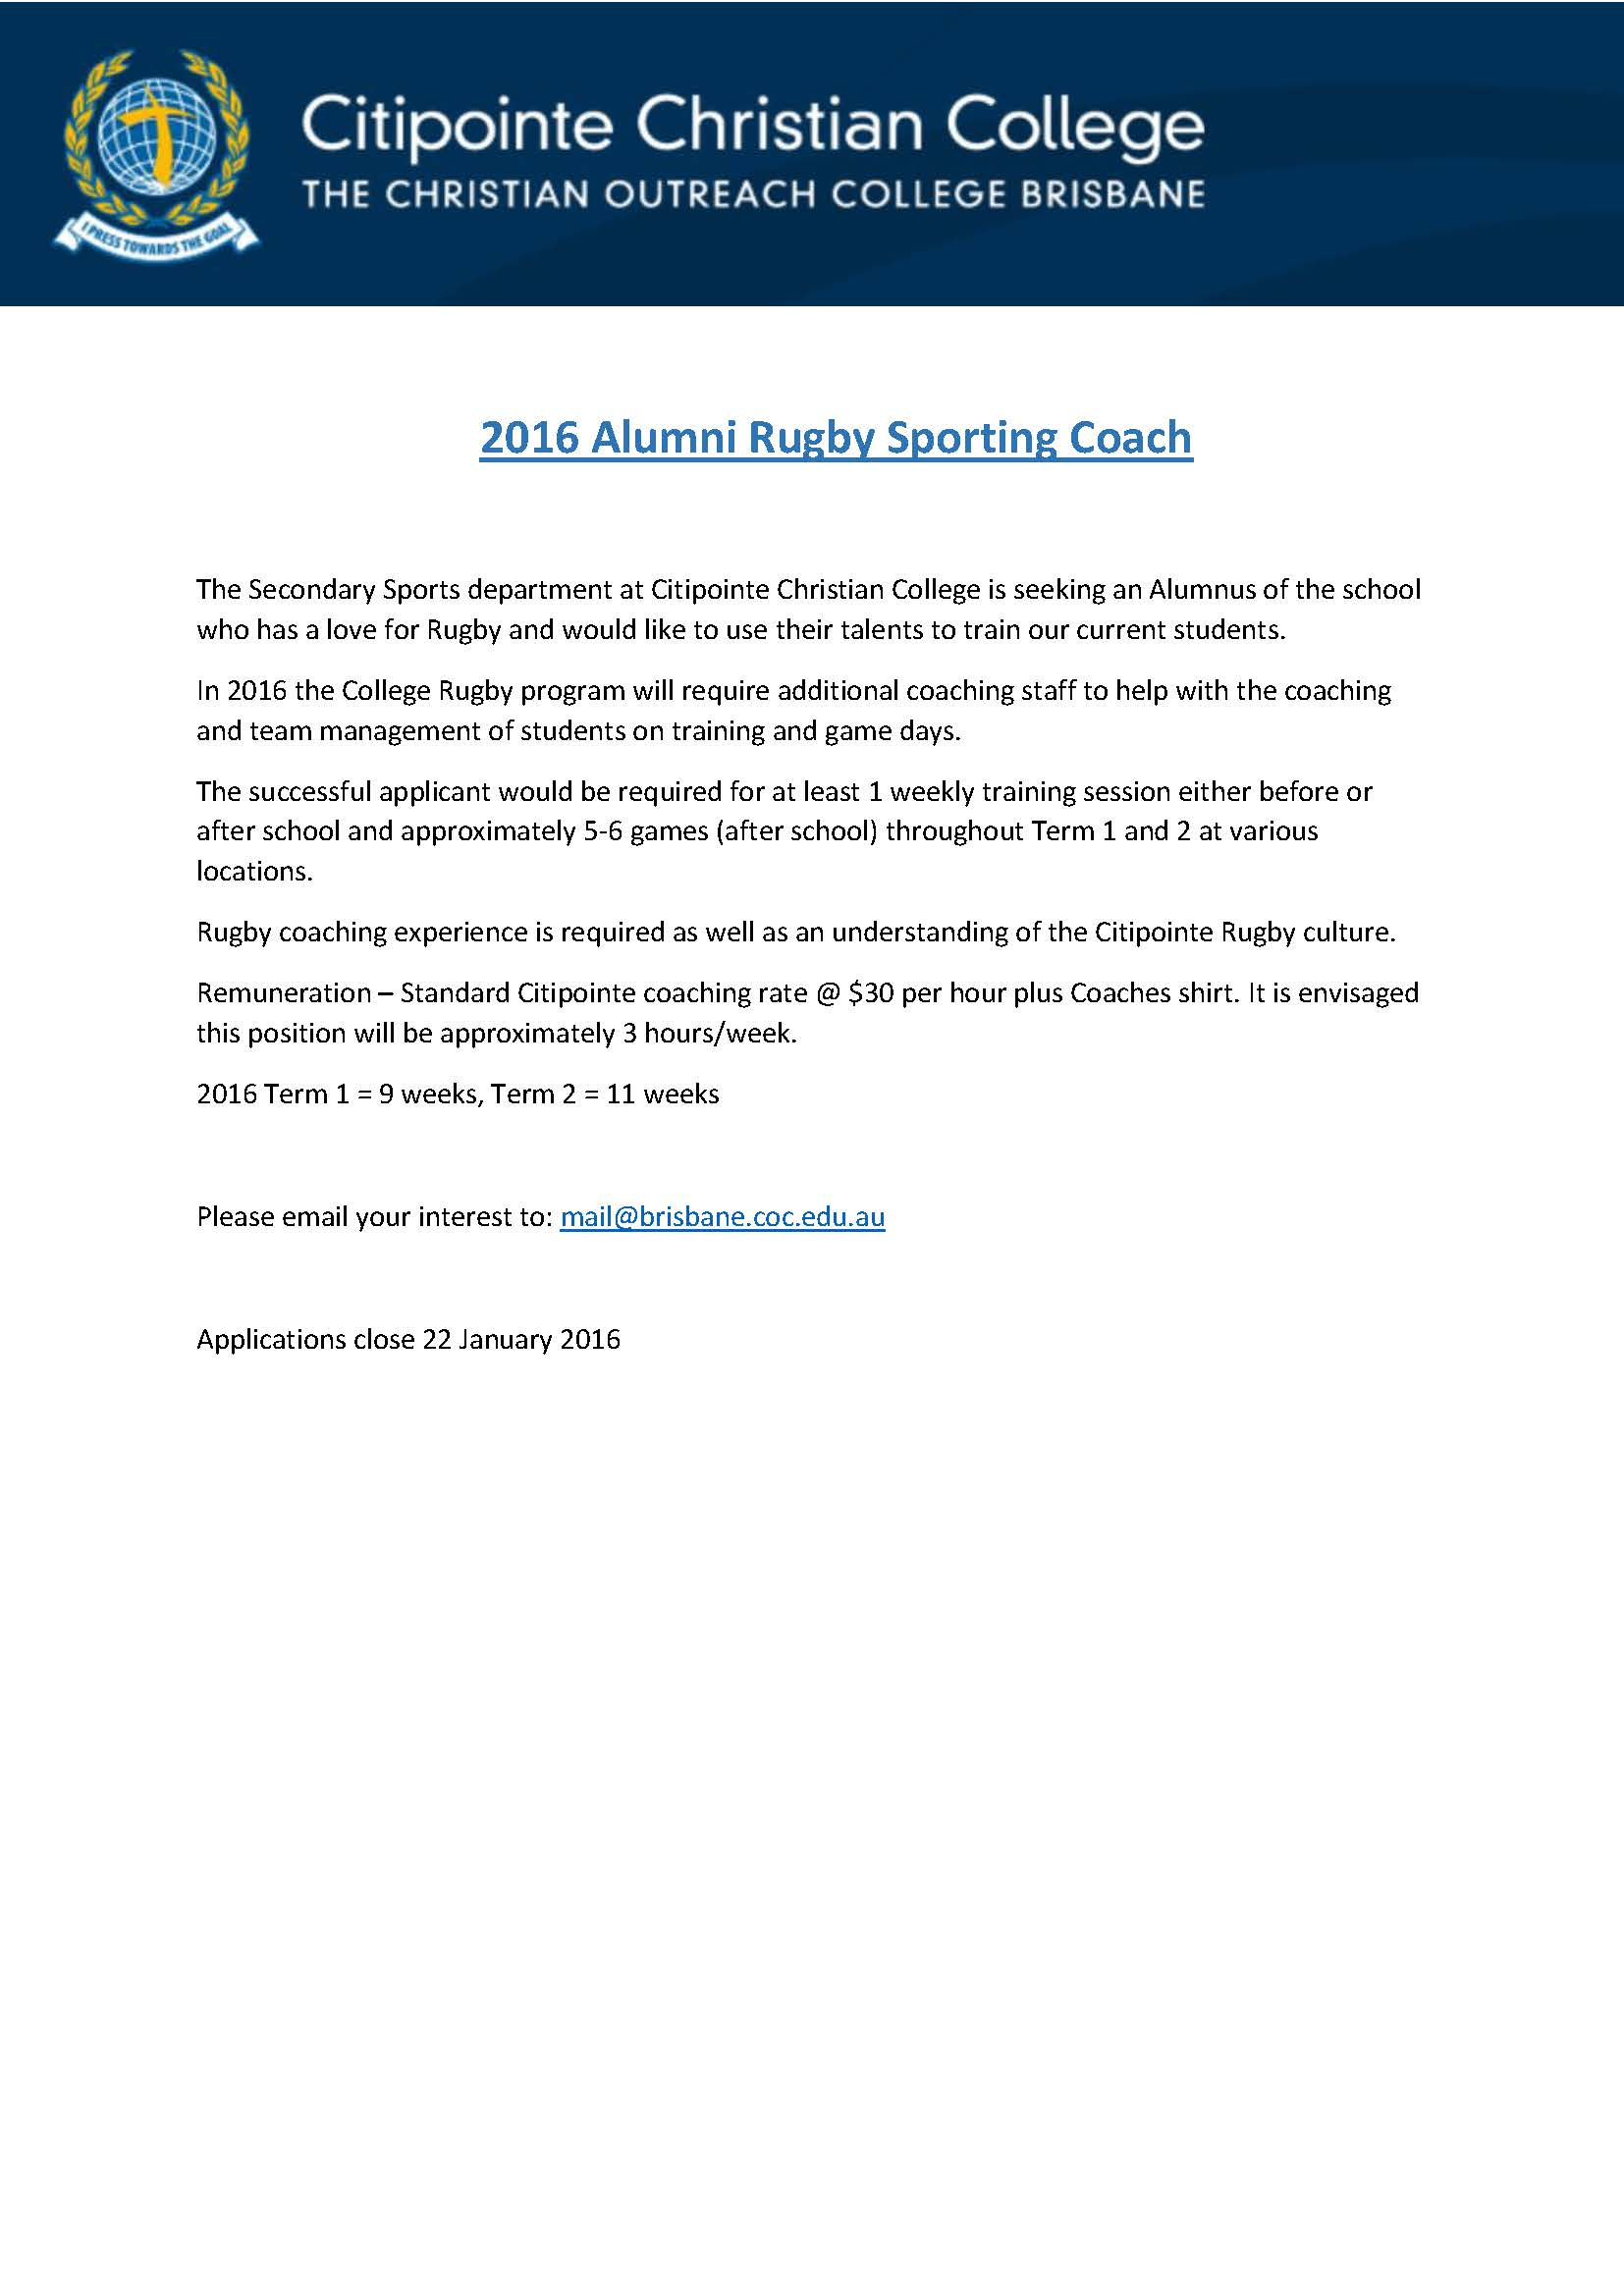 Rugby Coach 2016